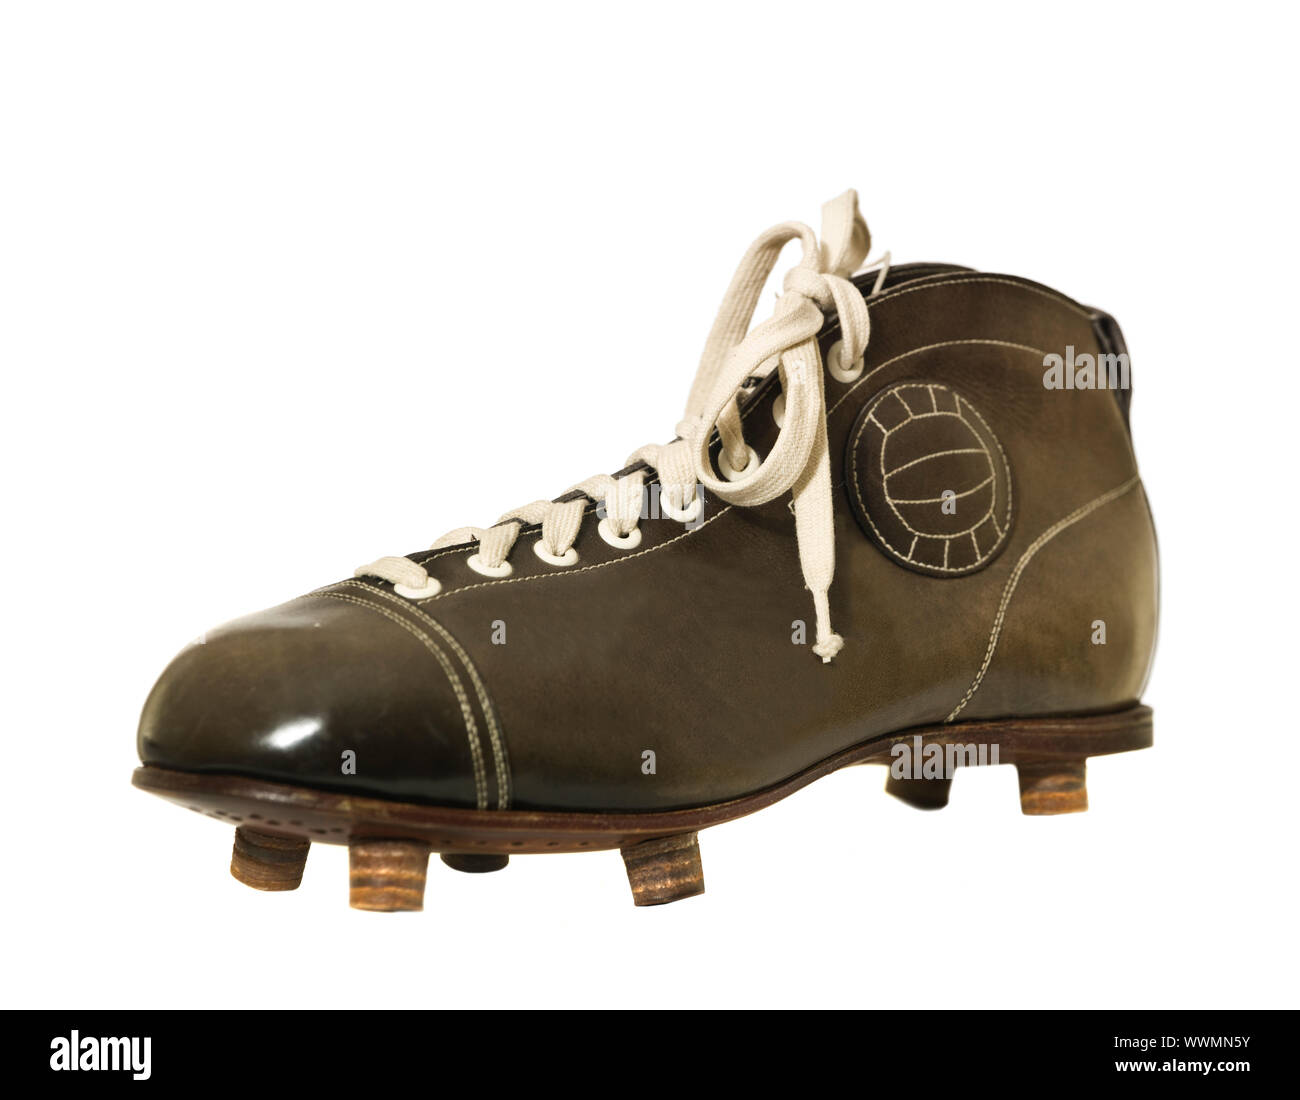 Antique Soccer Cleats High Resolution